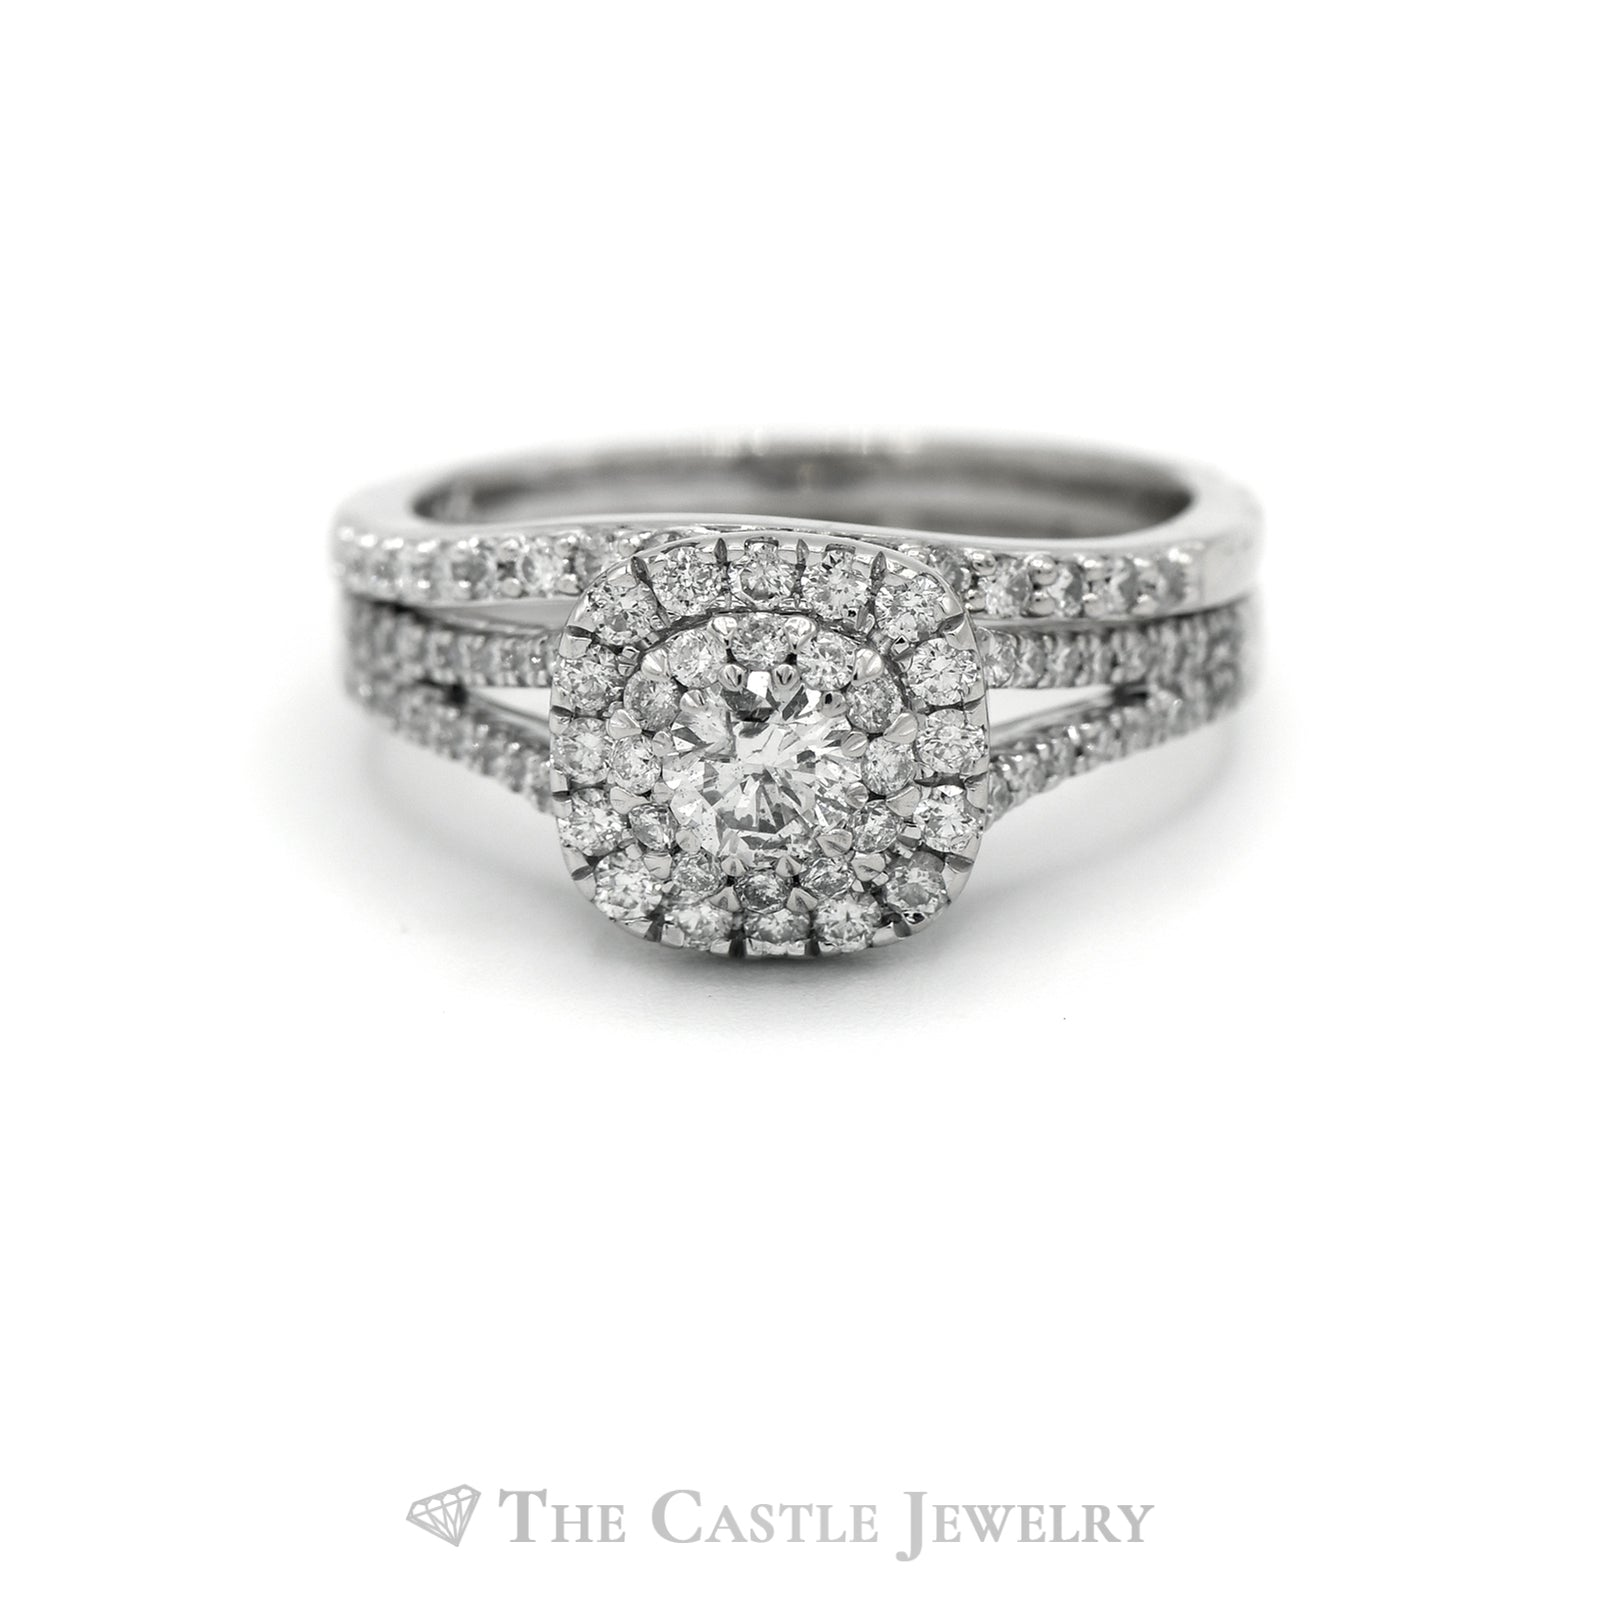 1cttw Diamond Halo Engagement Ring with Matching Curved Band in 14k White Gold